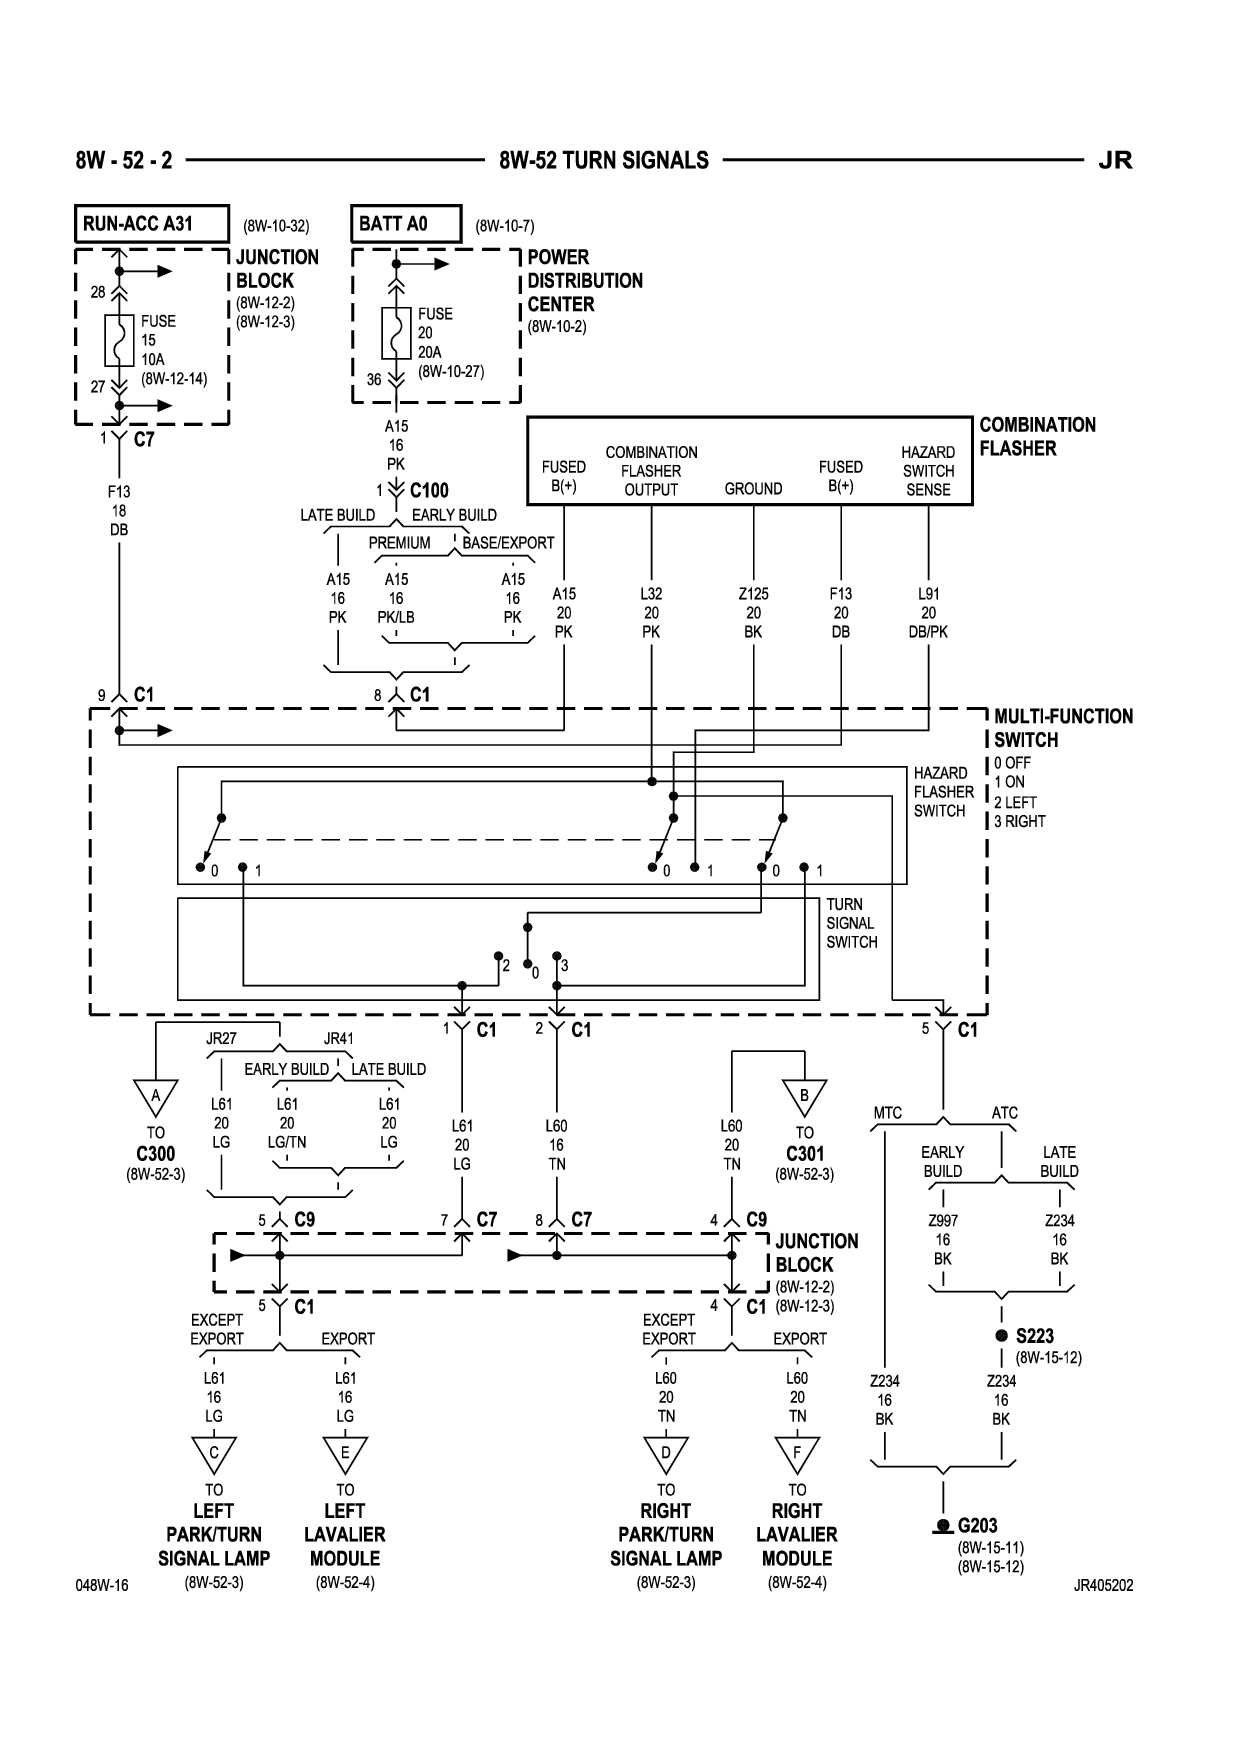 2001 Chrysler Sebring Wiring Diagram Free - Wiring Diagram